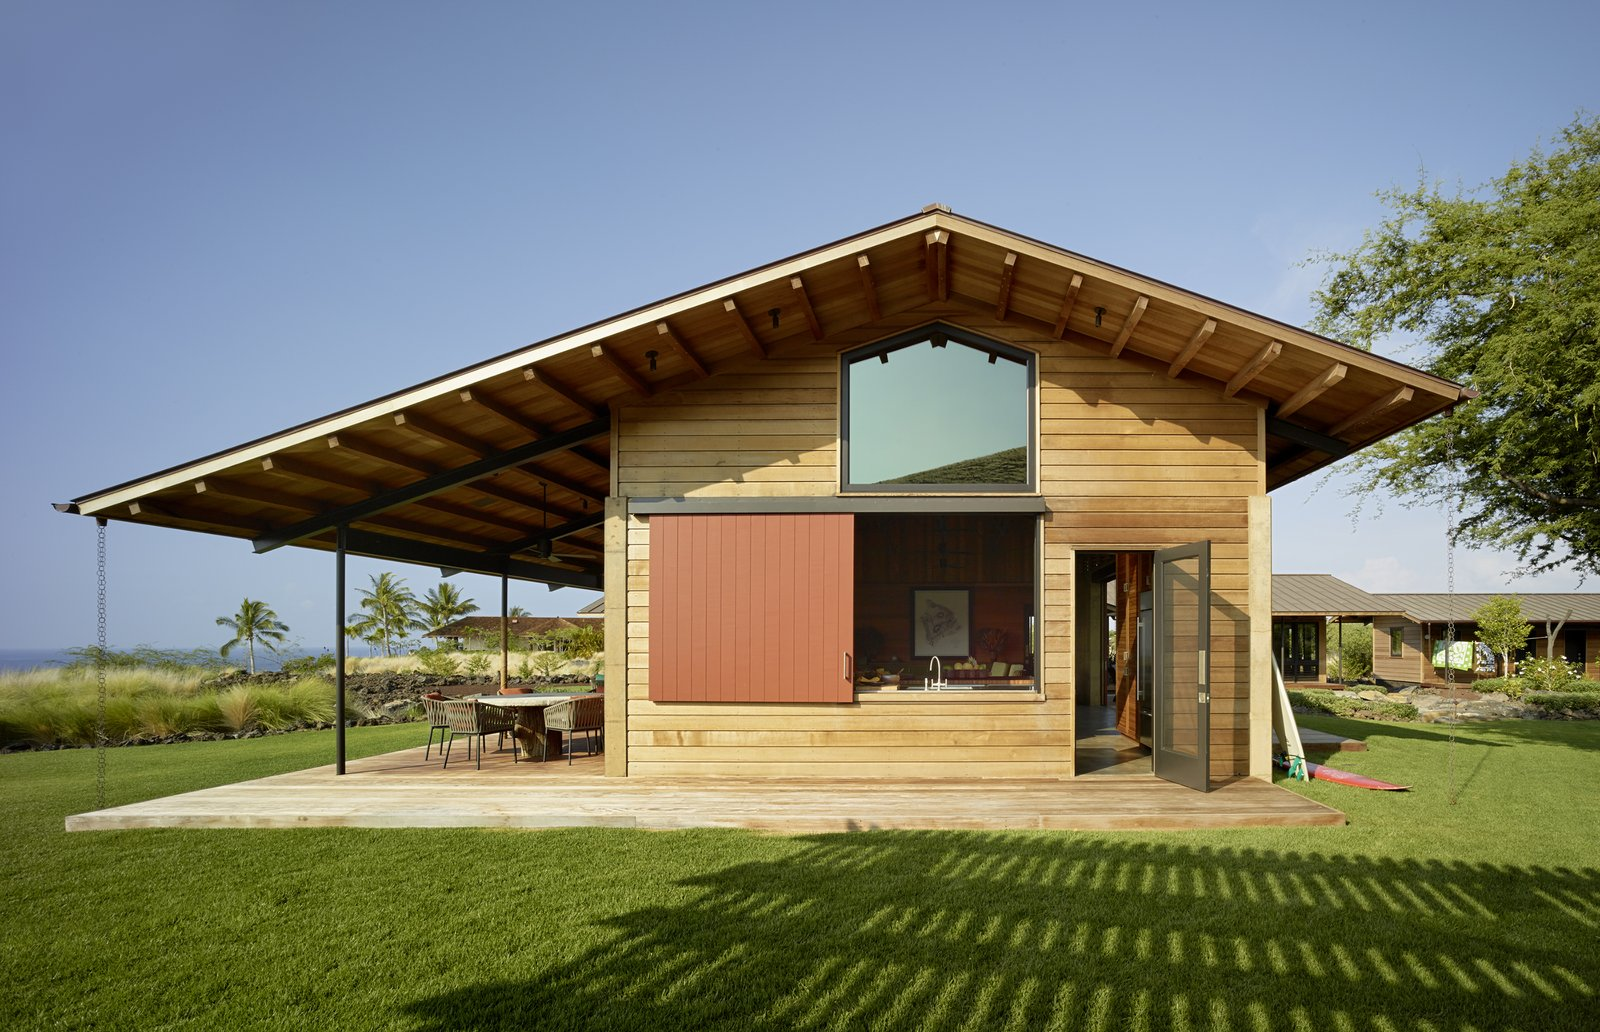 Exterior, House Building Type, Wood Siding Material, and Gable RoofLine  Photo 4 of 20 in An Incredible Home in Hawaii That's As Much Fun As Summer Camp